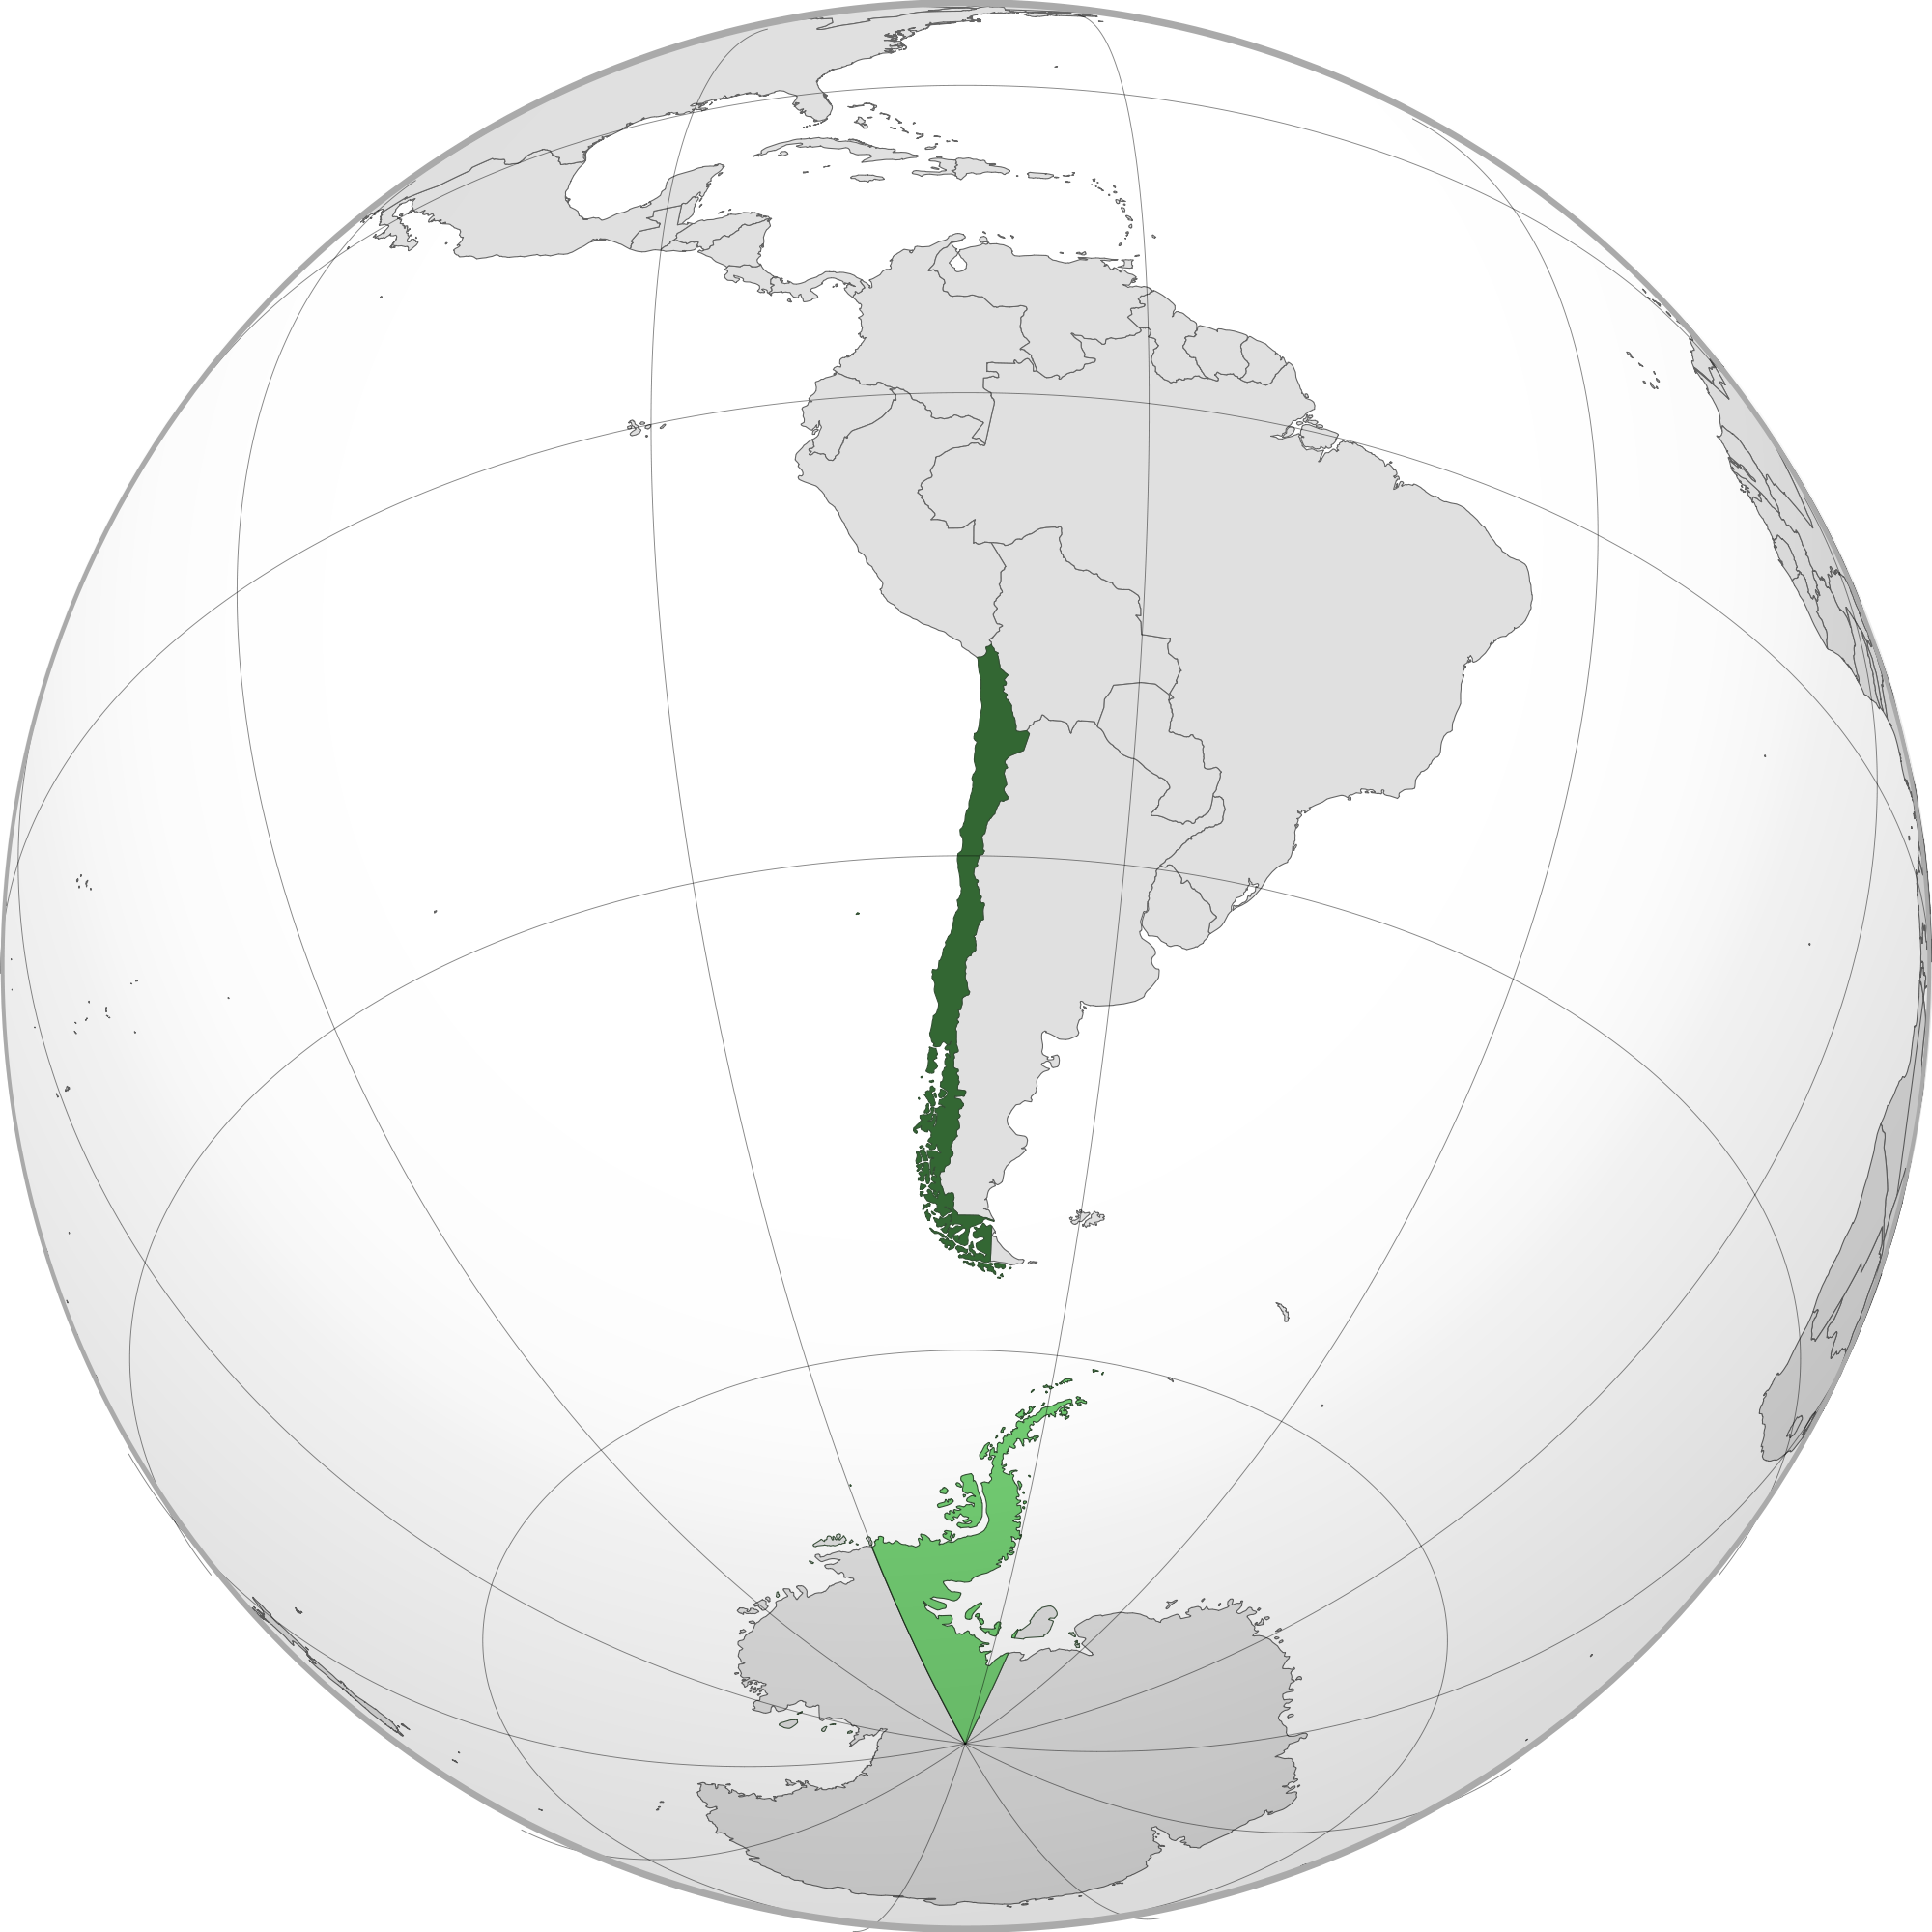 Location of the chile in the World Map